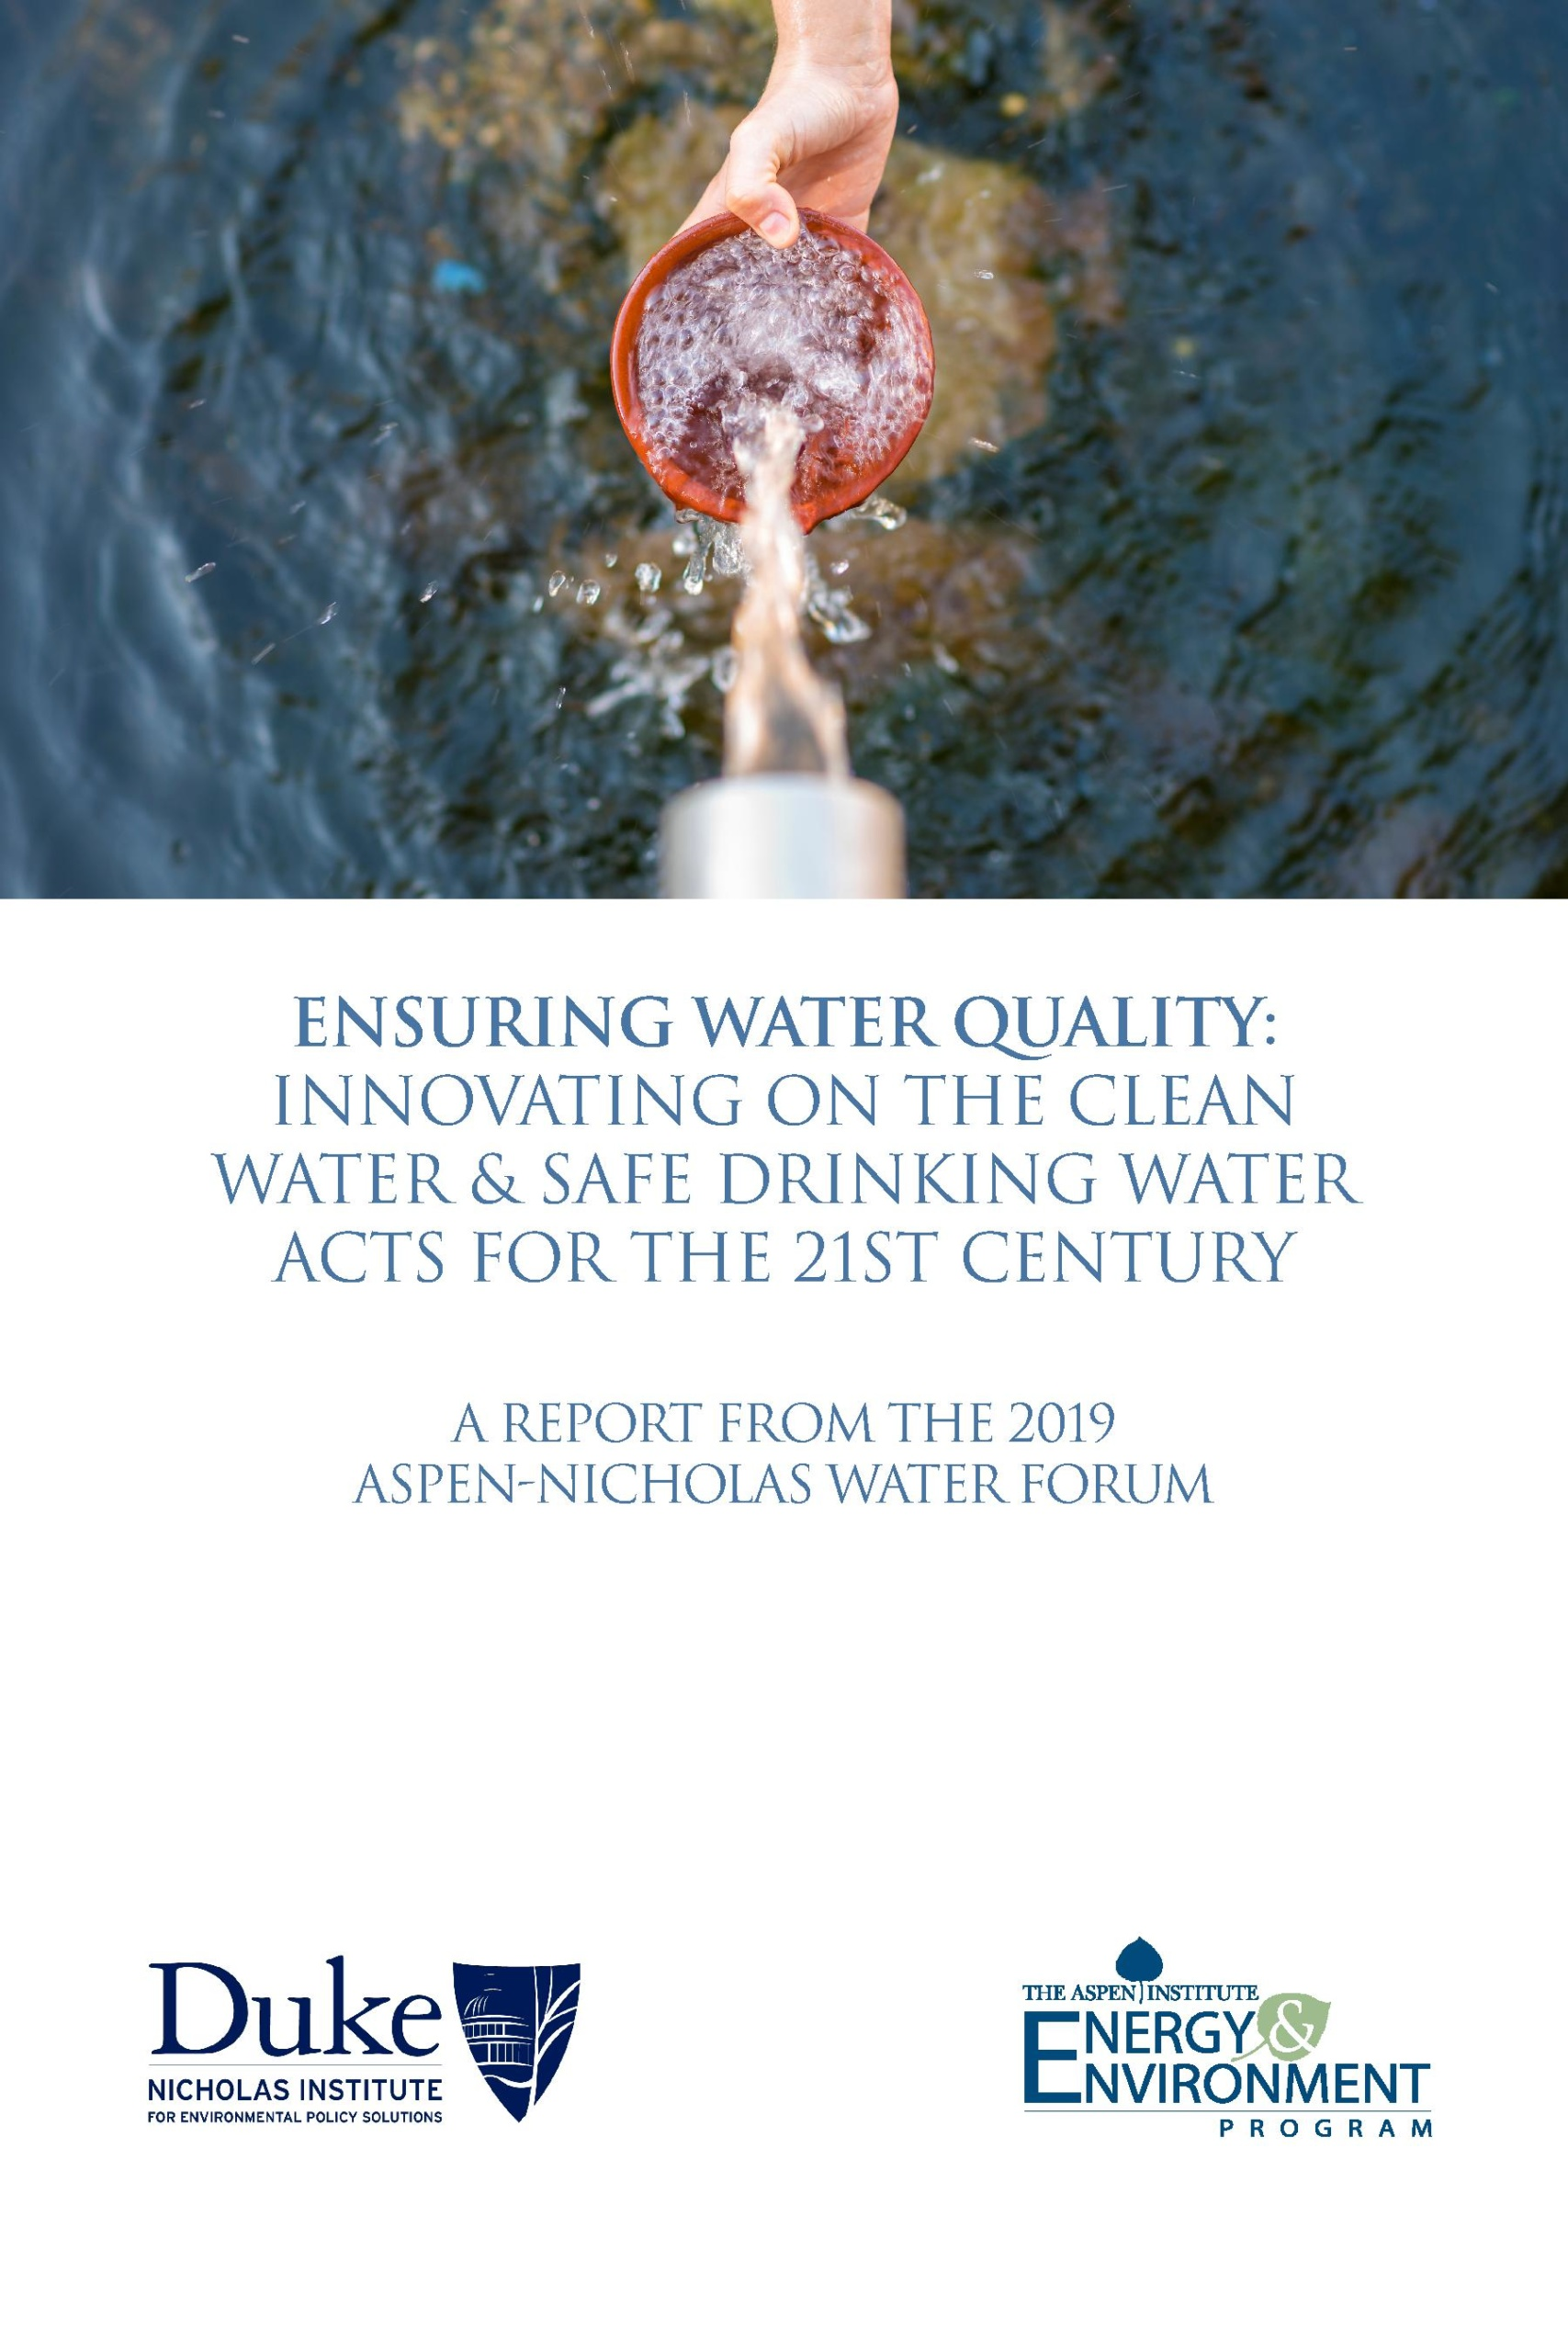 Ensuring Water Quality: A Report from the 2019 Aspen-Nicholas Forum